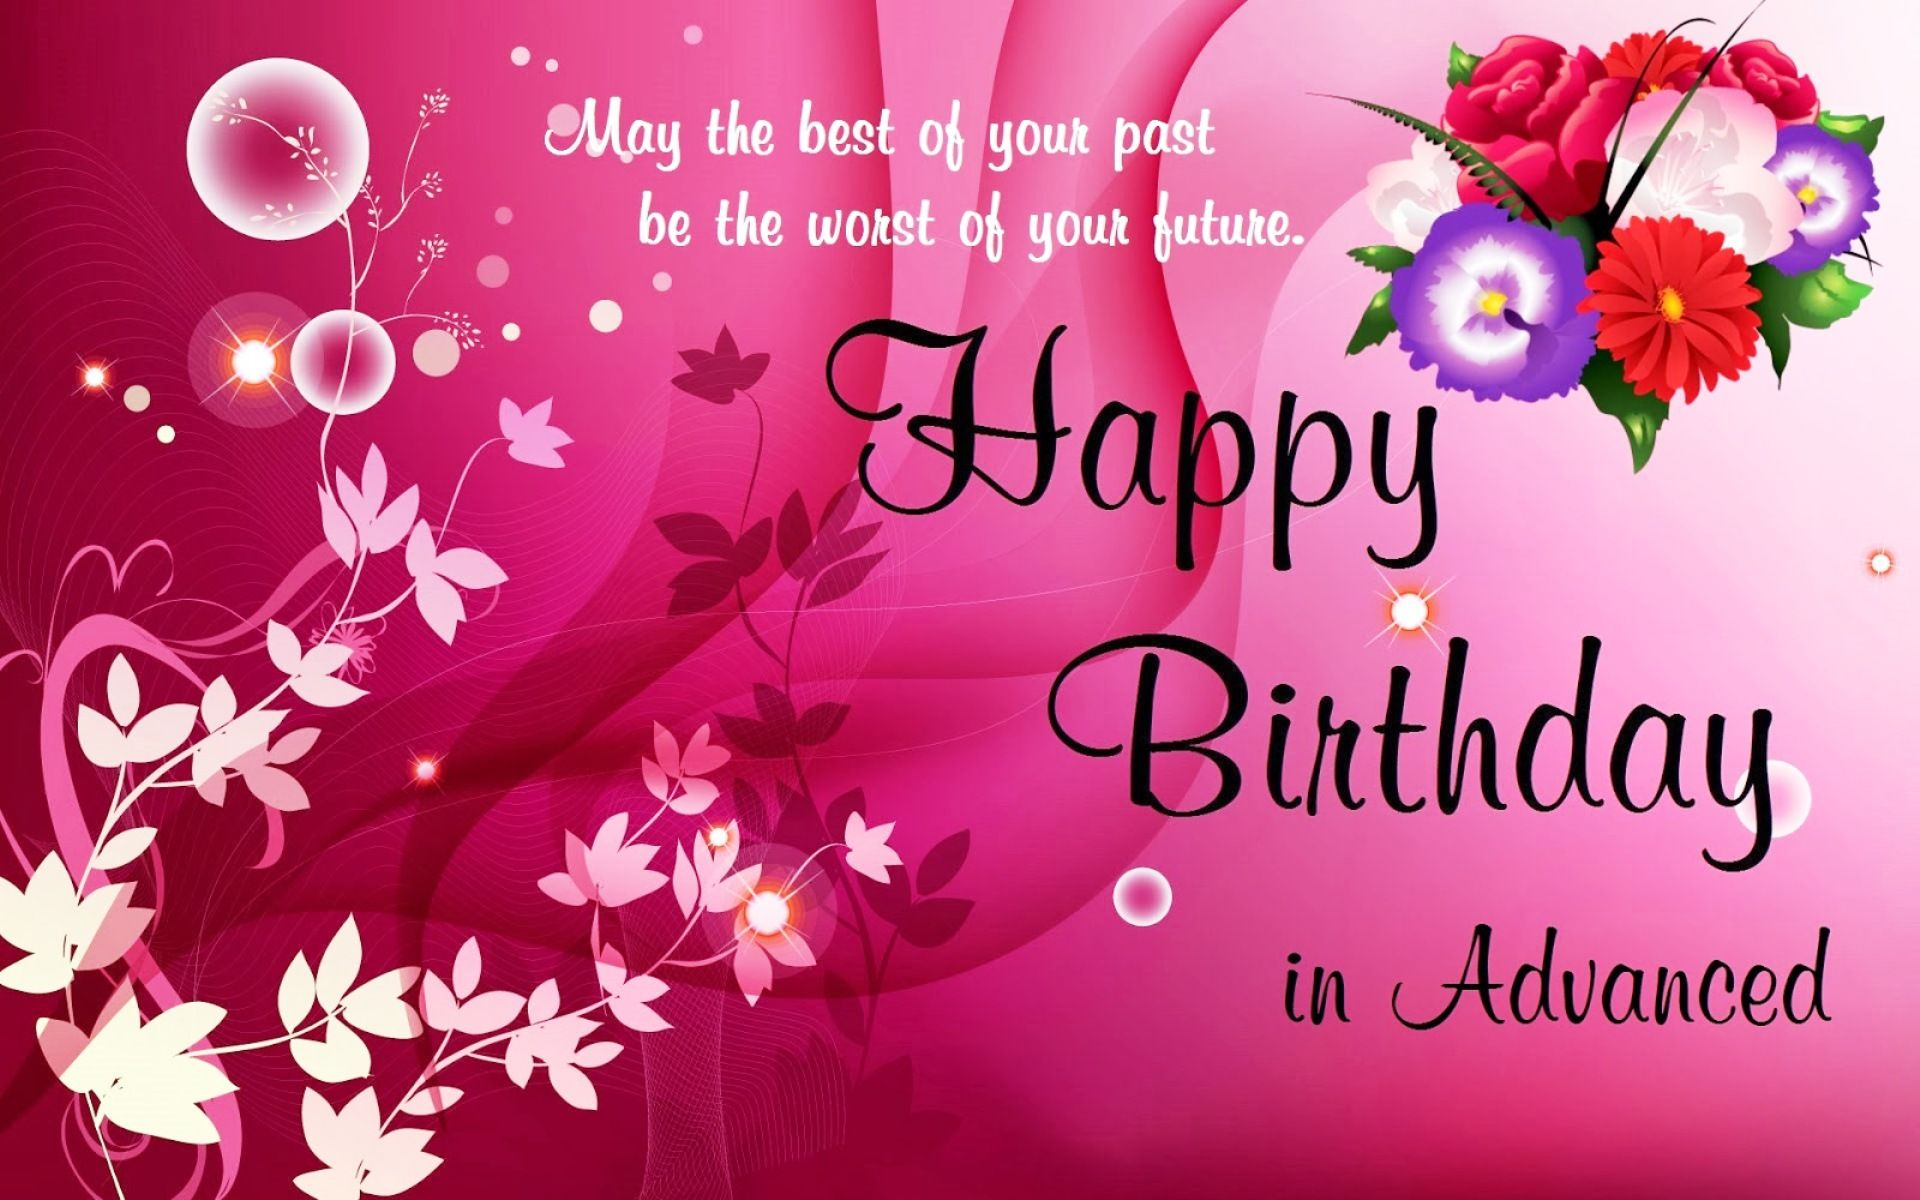 Happy birthday images free download with wishes happy birthday happy birthday images free download with wishes m4hsunfo